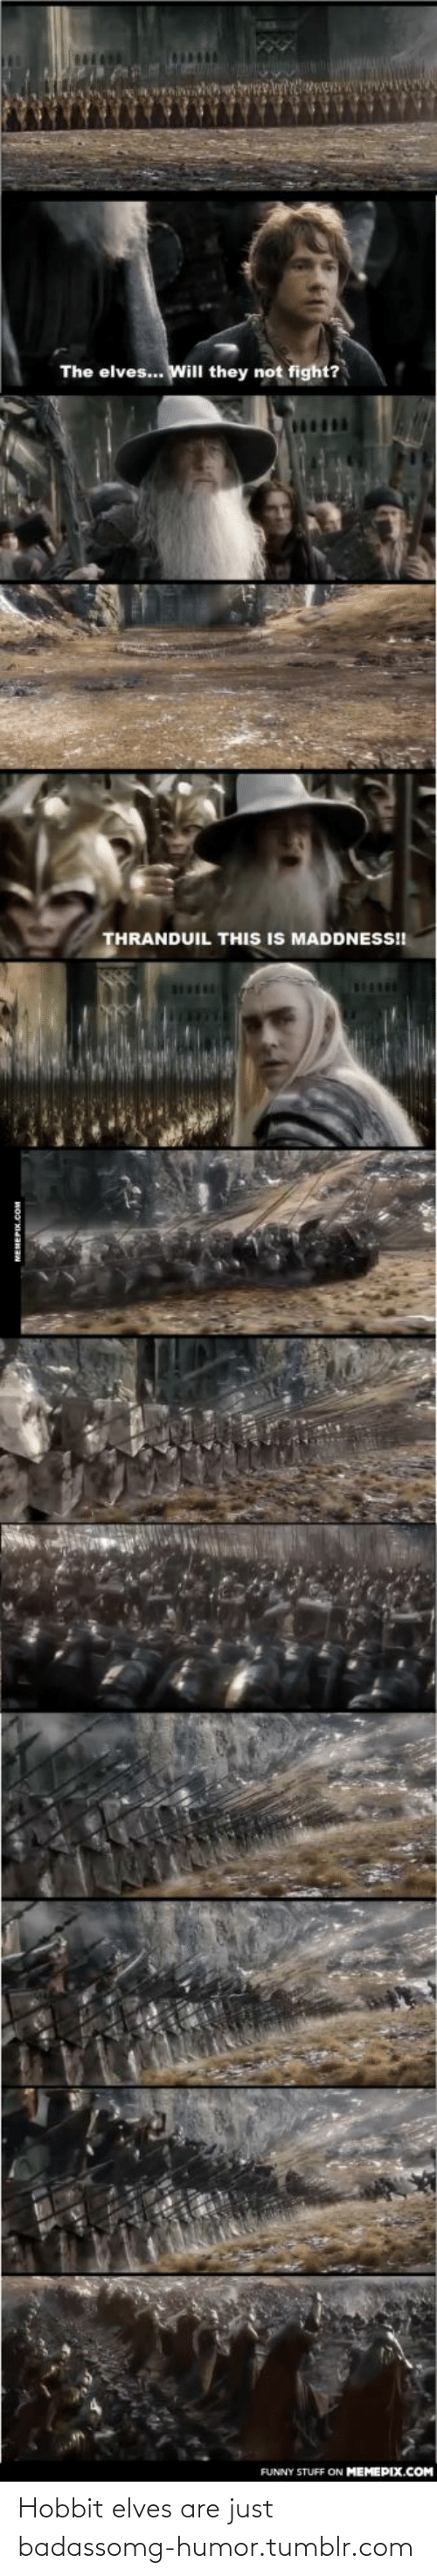 thranduil: The elves... Will they not fight?  THRANDUIL THIS IS MADDNESS!!  FUNNY STUFF ON MEMEPIX.COM Hobbit elves are just badassomg-humor.tumblr.com